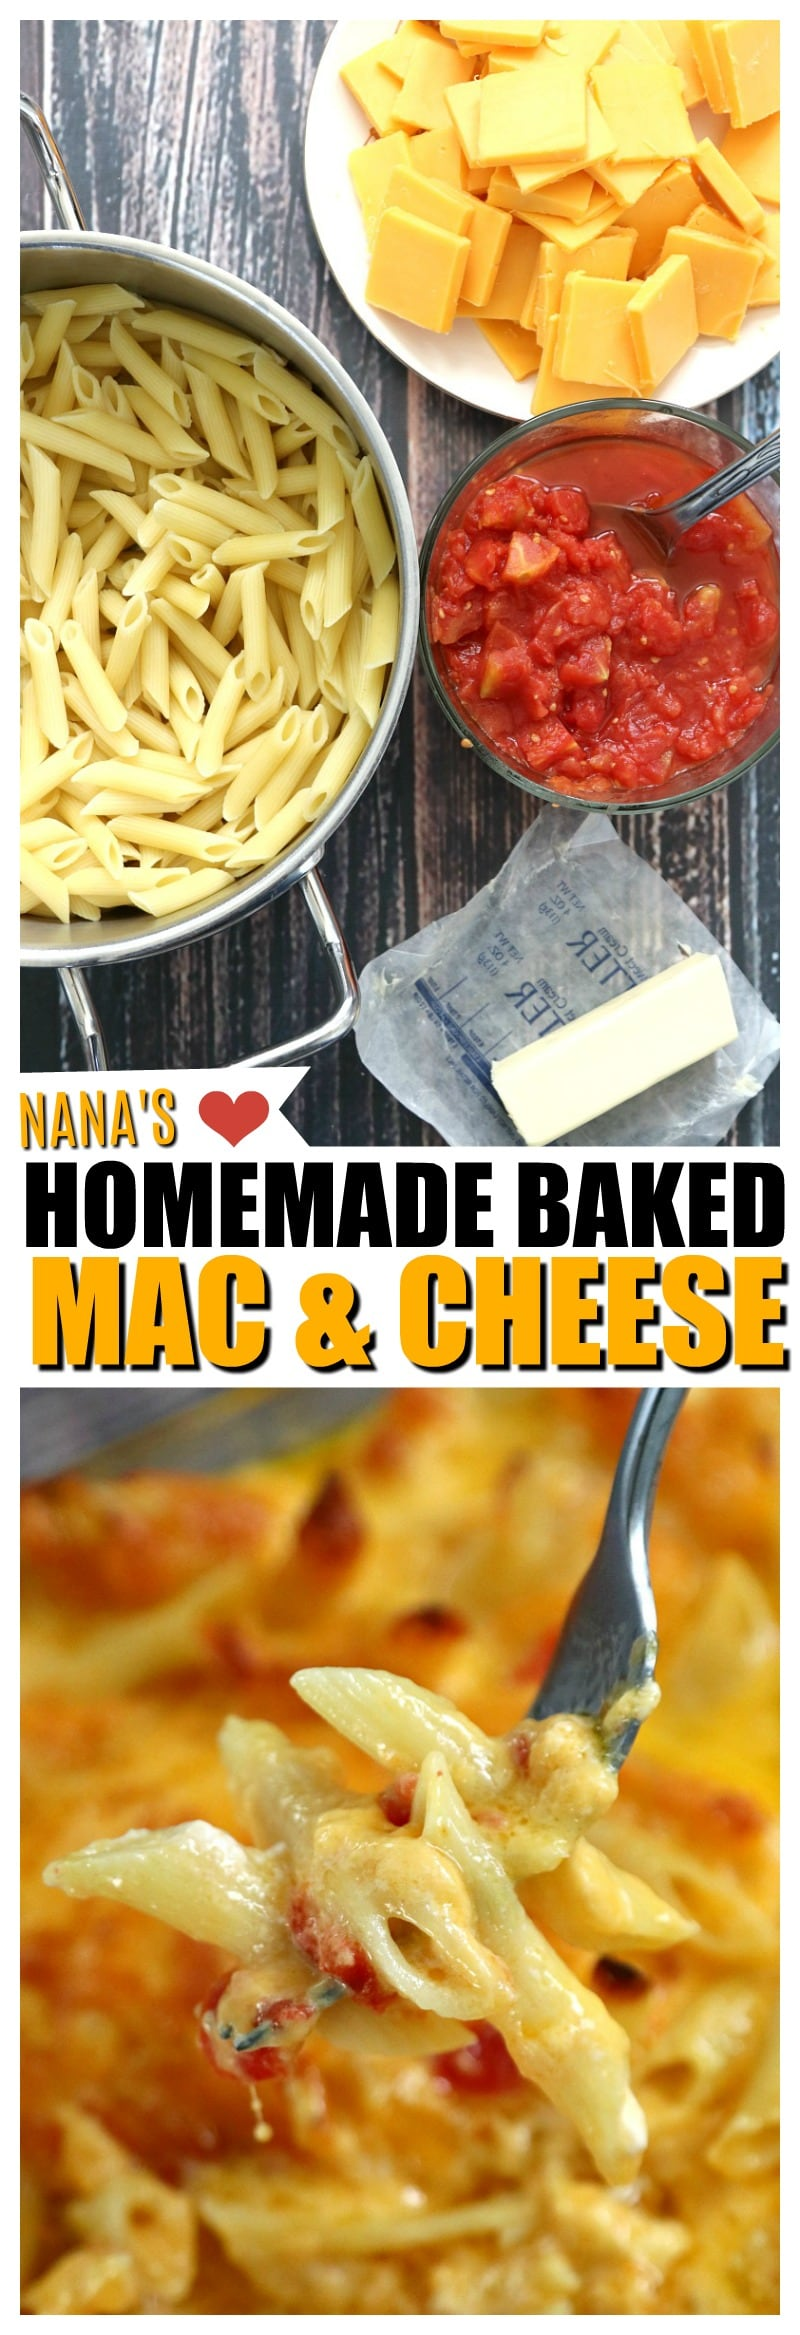 Nana's Homemade Baked Macaroni and Cheese recipe